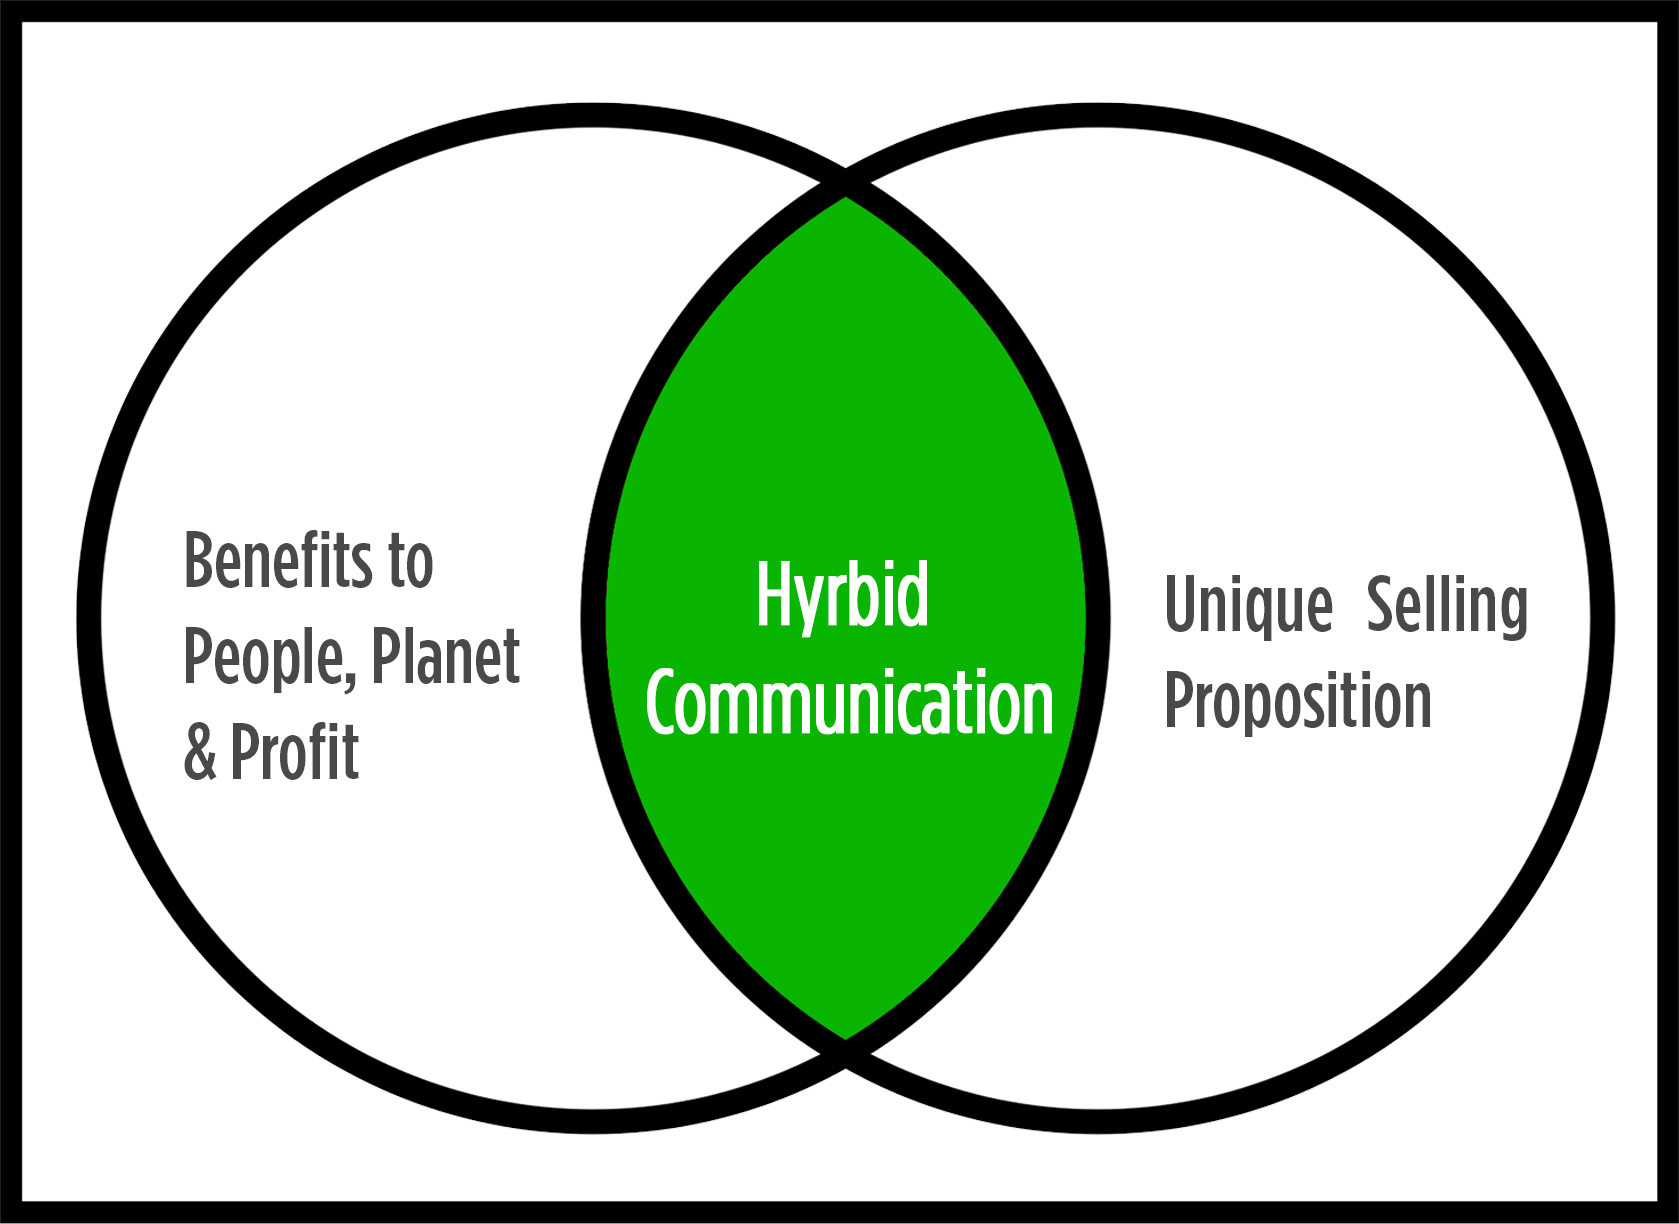 1. HYBRID COMMUNICATION - Communicate Unique Selling Proposition + Positive Impact